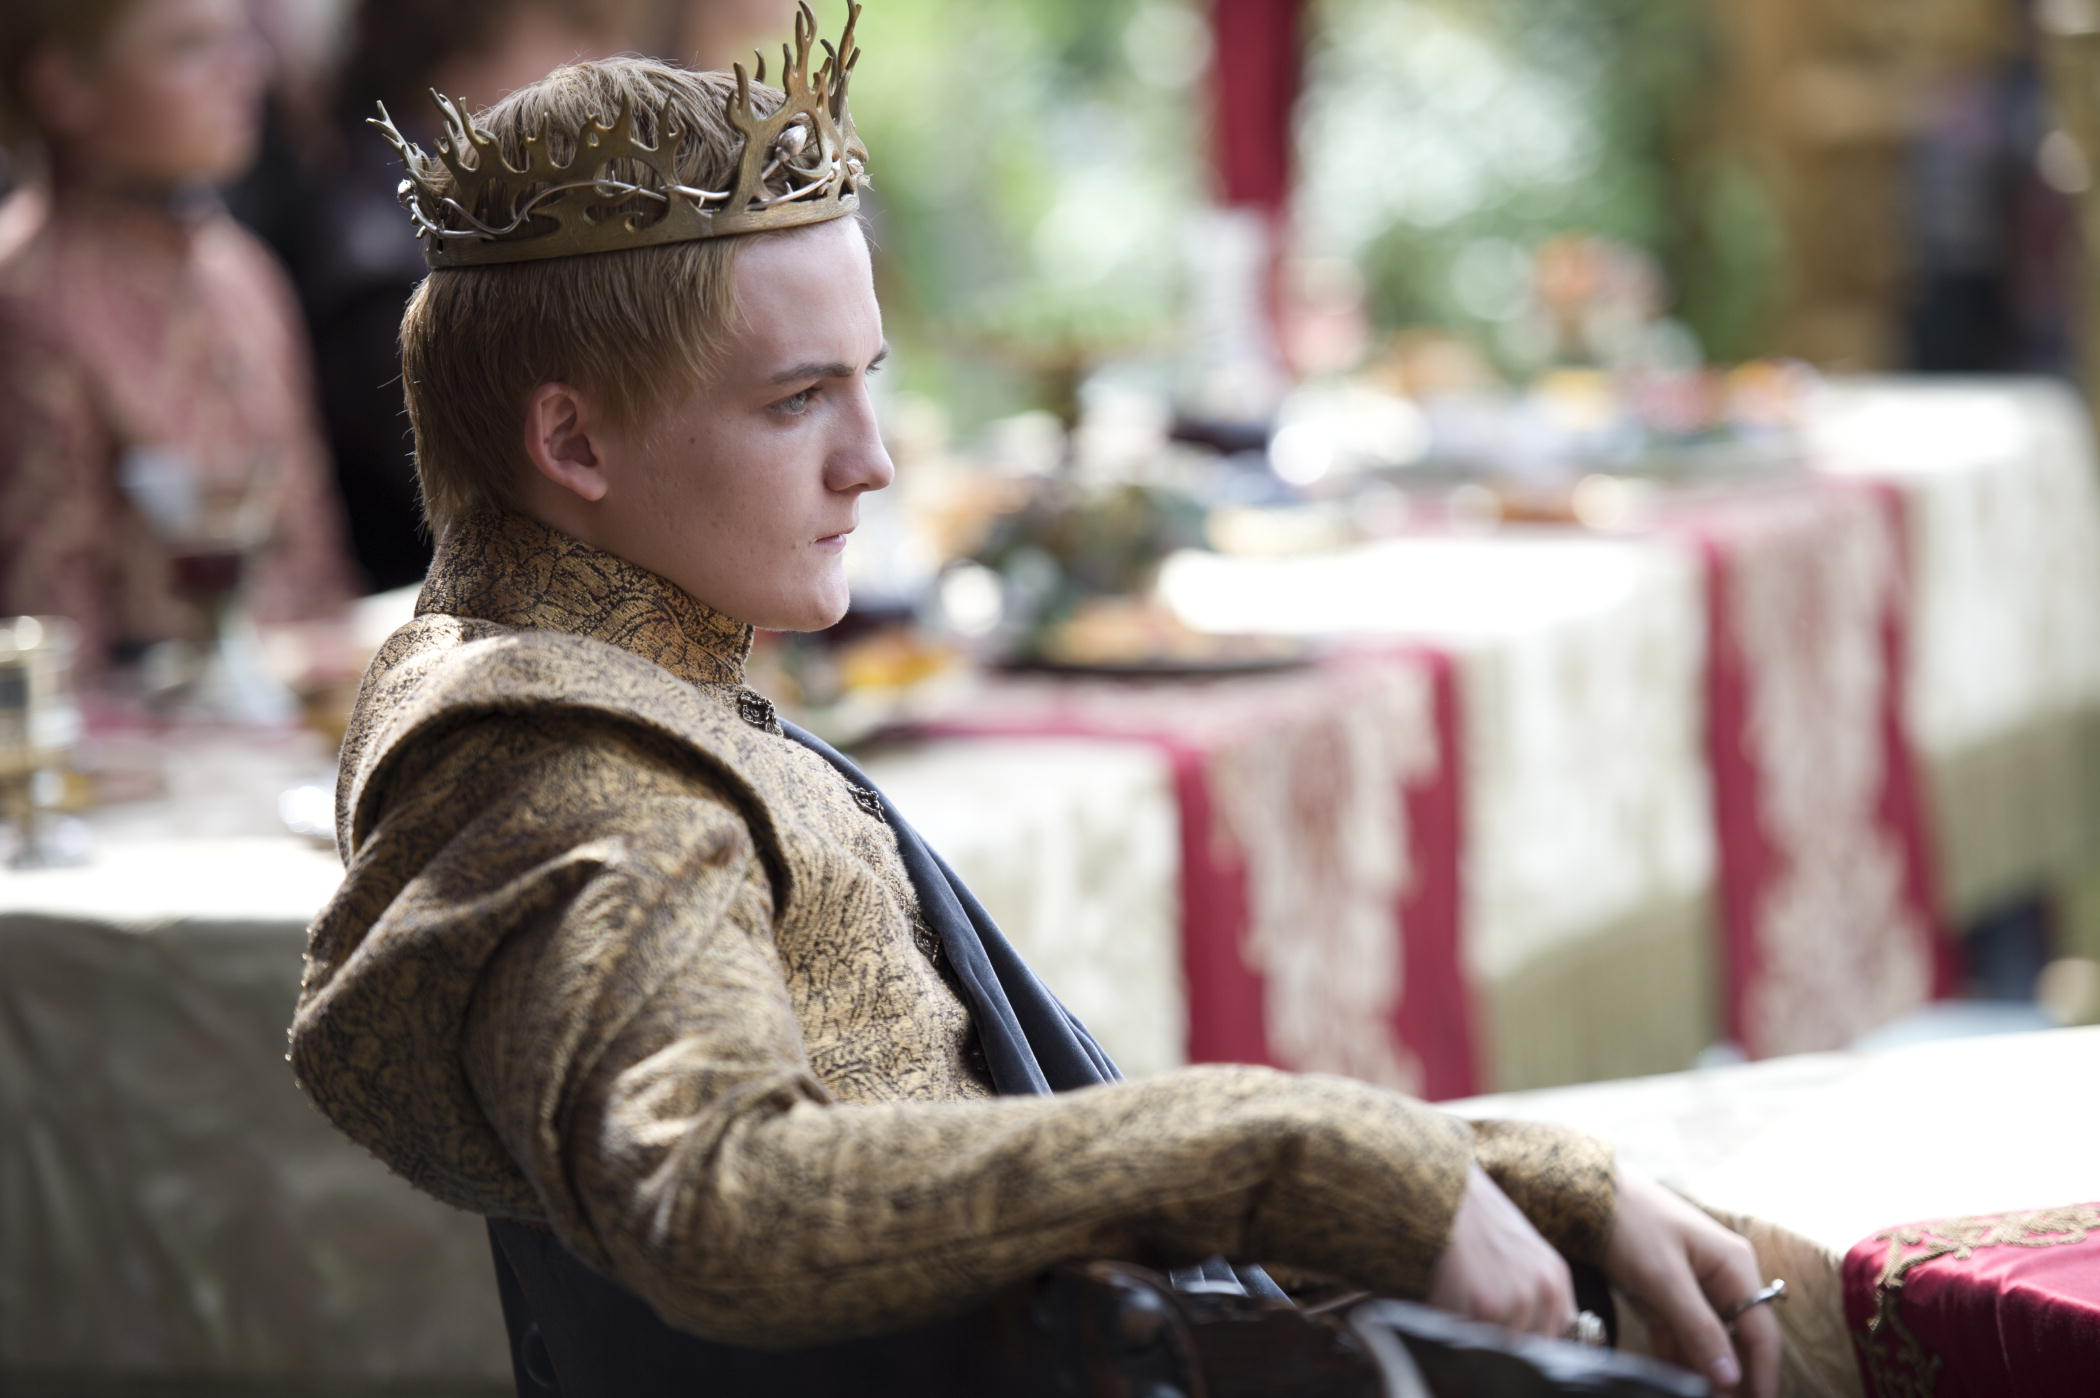 jack gleeson wallpaper hd 61568